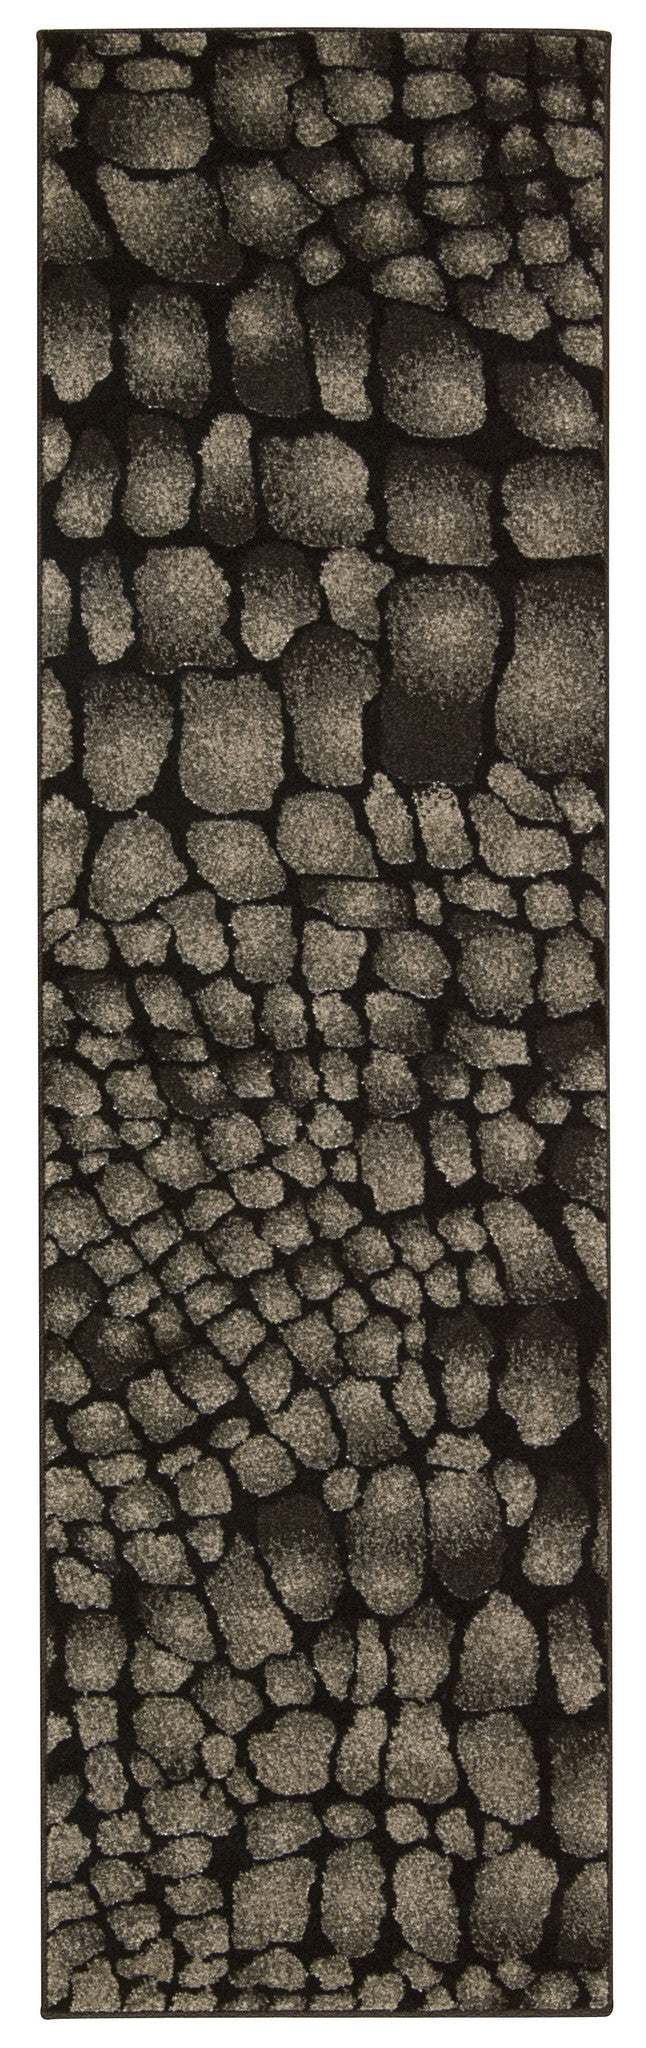 Michael Amini Glistening Nights Black Area Rug By Nourison MA509 BLK